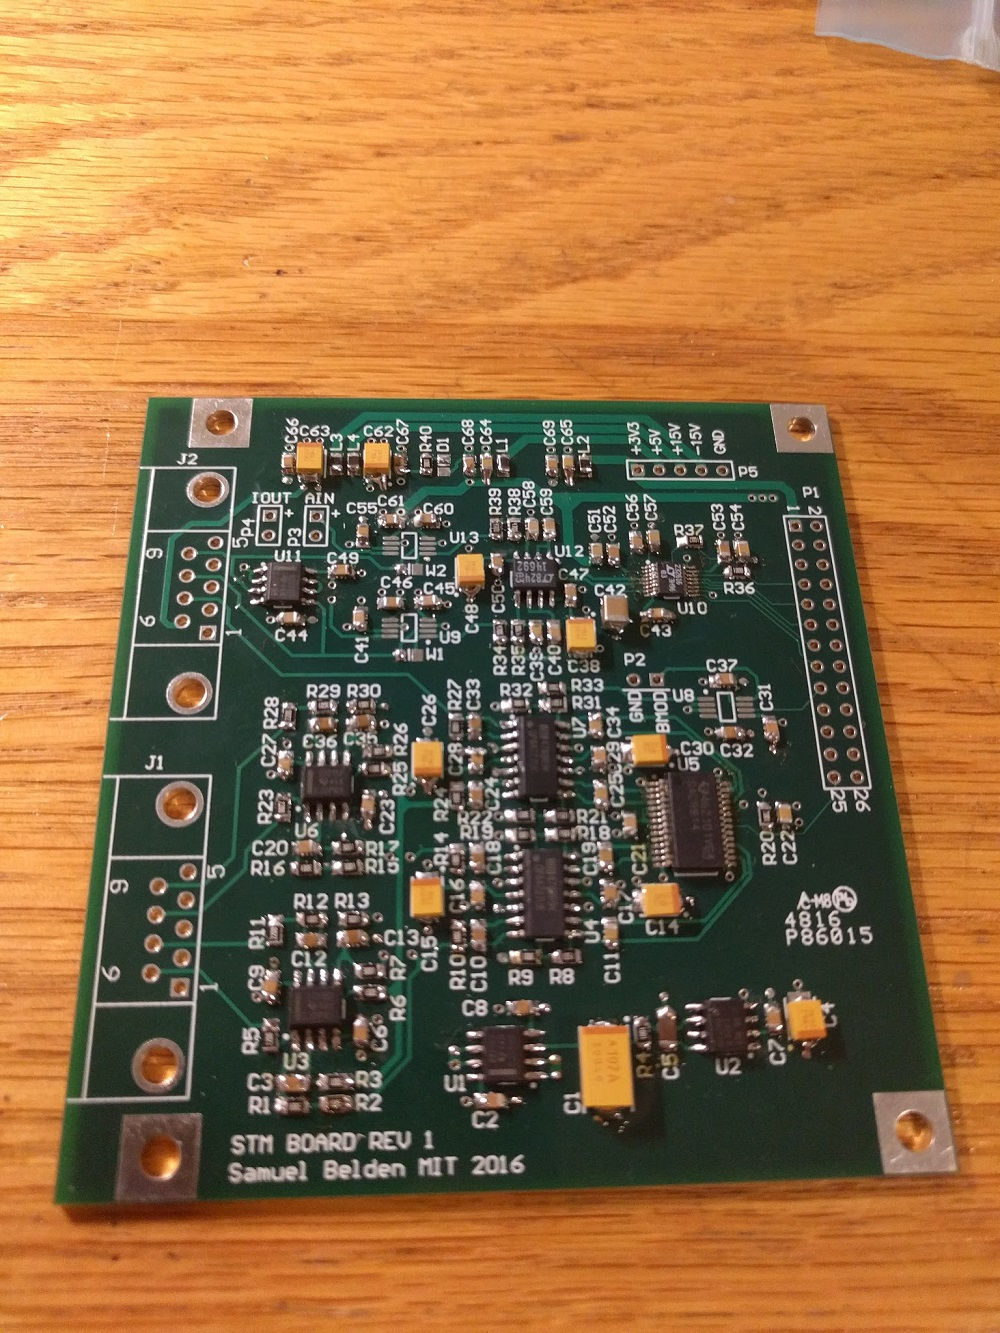 Samuel Belden How To Make Almost Anything Circuit Board Articles Rush Pcb Blog High Current Designing Operation Of The Stm And Some Sample Scans